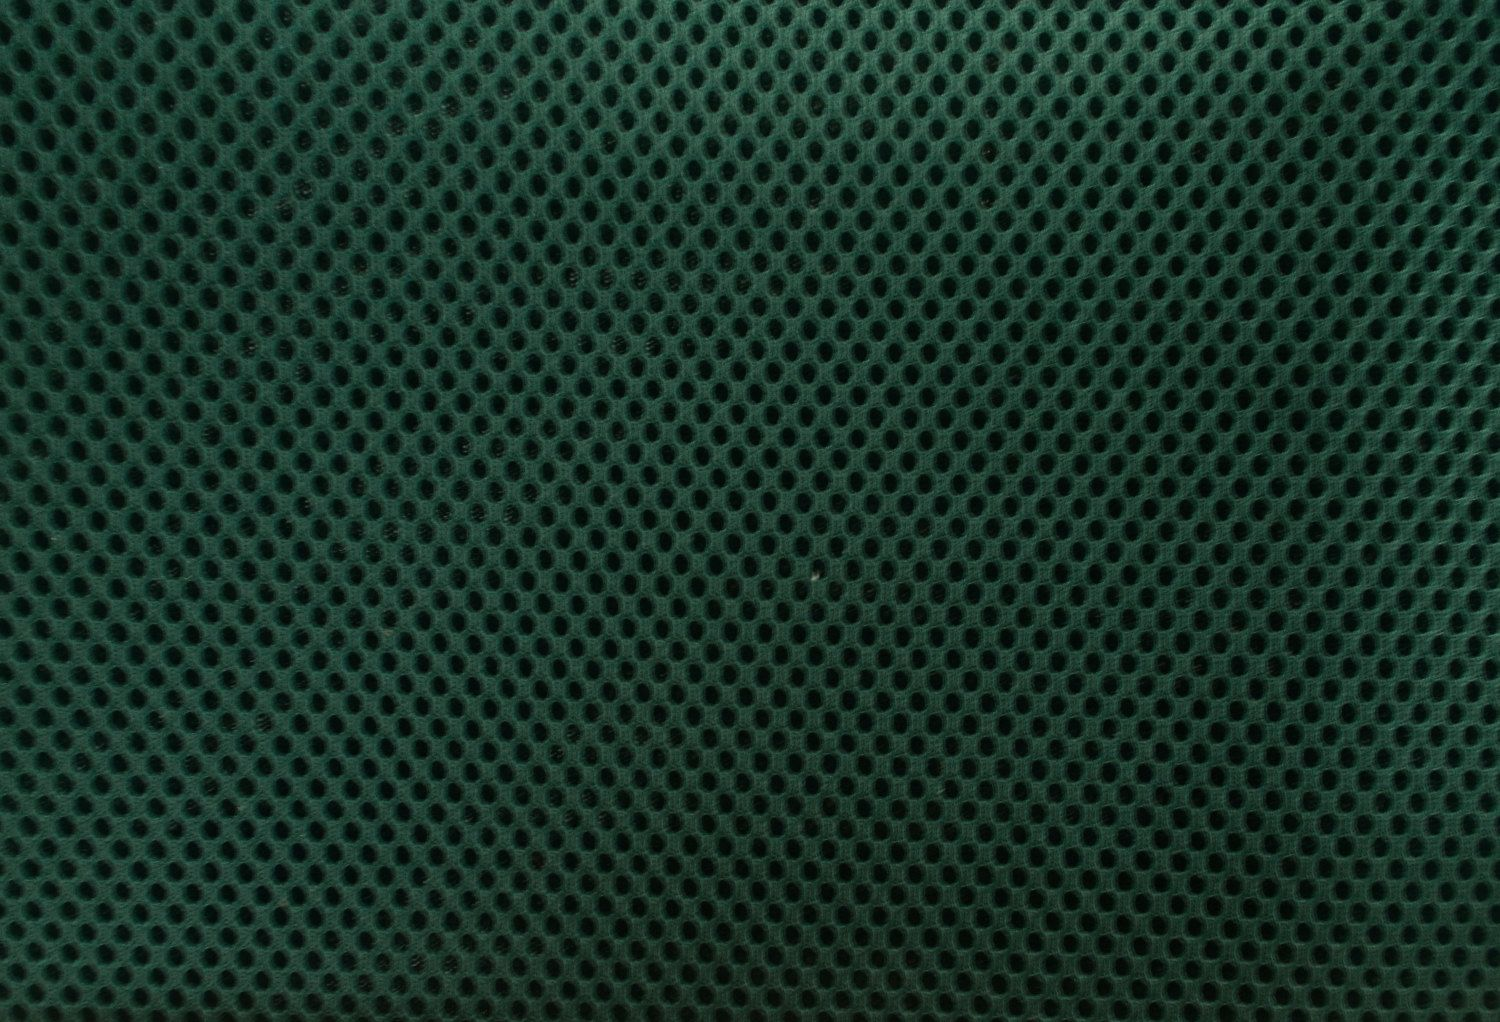 60 Wide Padded Foam Mesh Fabric Spruce Green Auto Upholstery Bags Shoes Backpacks Straps Crafts Spacer Upholstery Bag Mesh Fabric Fabric